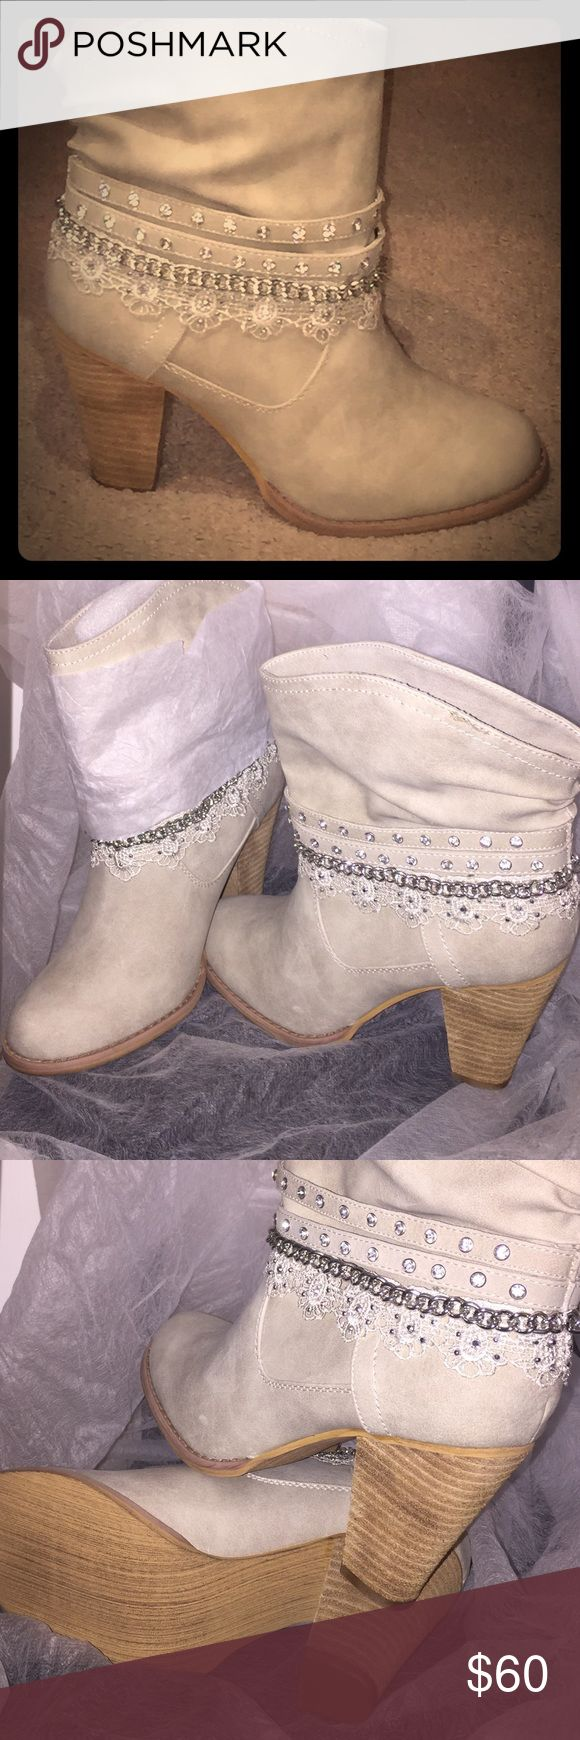 "Brand New Not Rated Boots Super cute cream colored ankle boots with silver and ""diamond"" accent chains!!! Woman's size 7 1/2, heel height 3 1/2 inches Not Rated Shoes Ankle Boots & Booties"